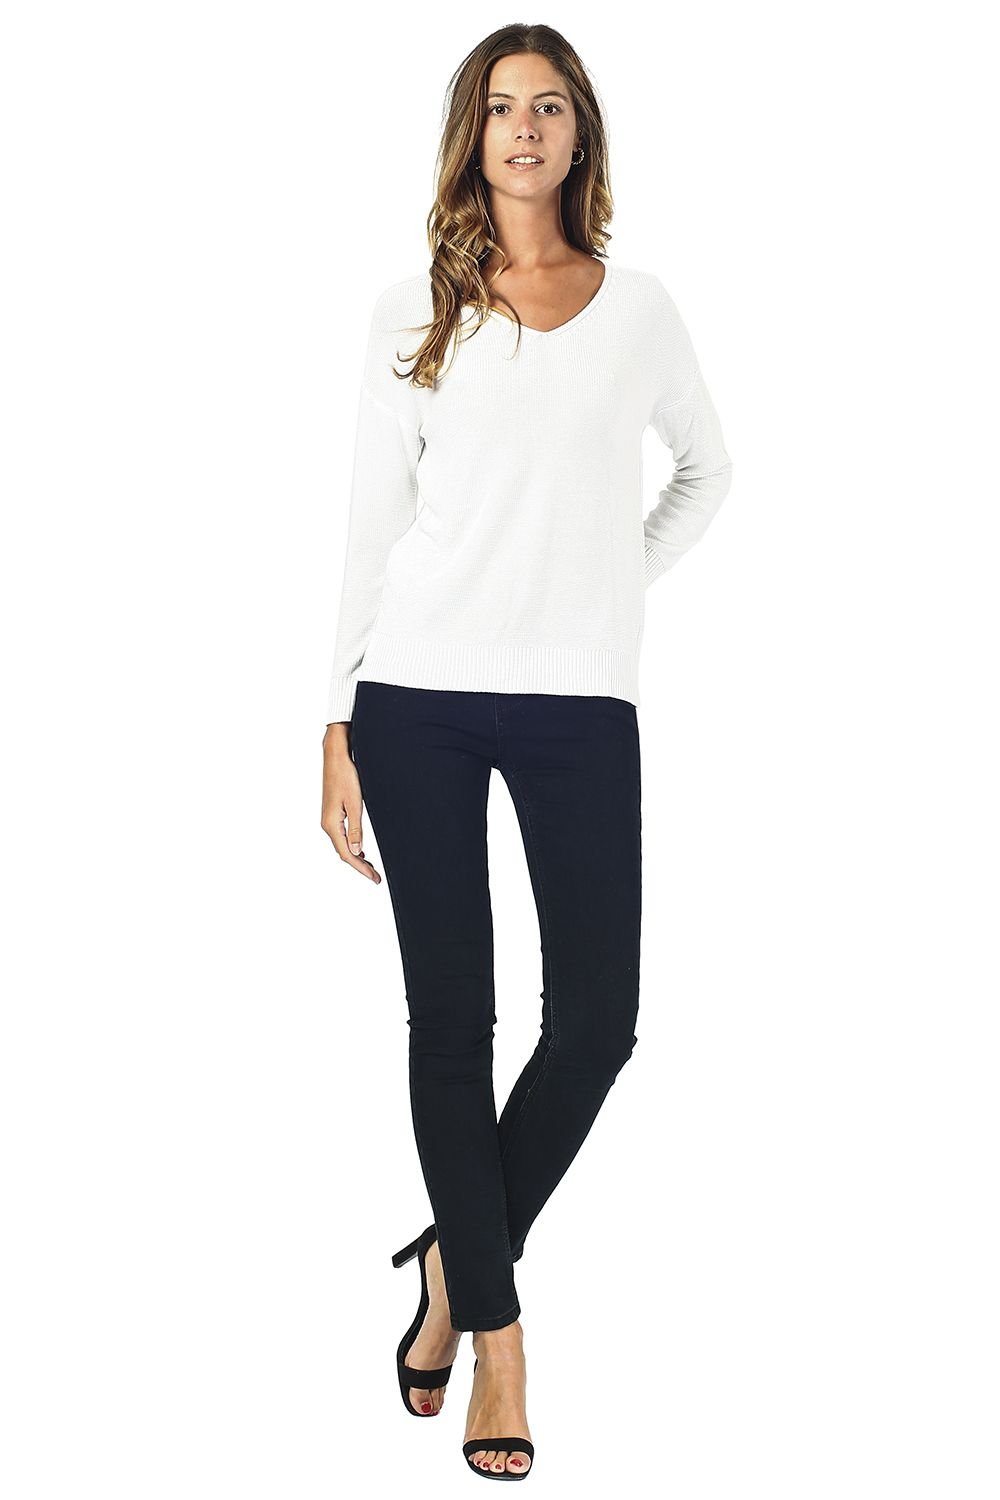 Assuili Longline V-neck Sweater with Side Splits in Natural